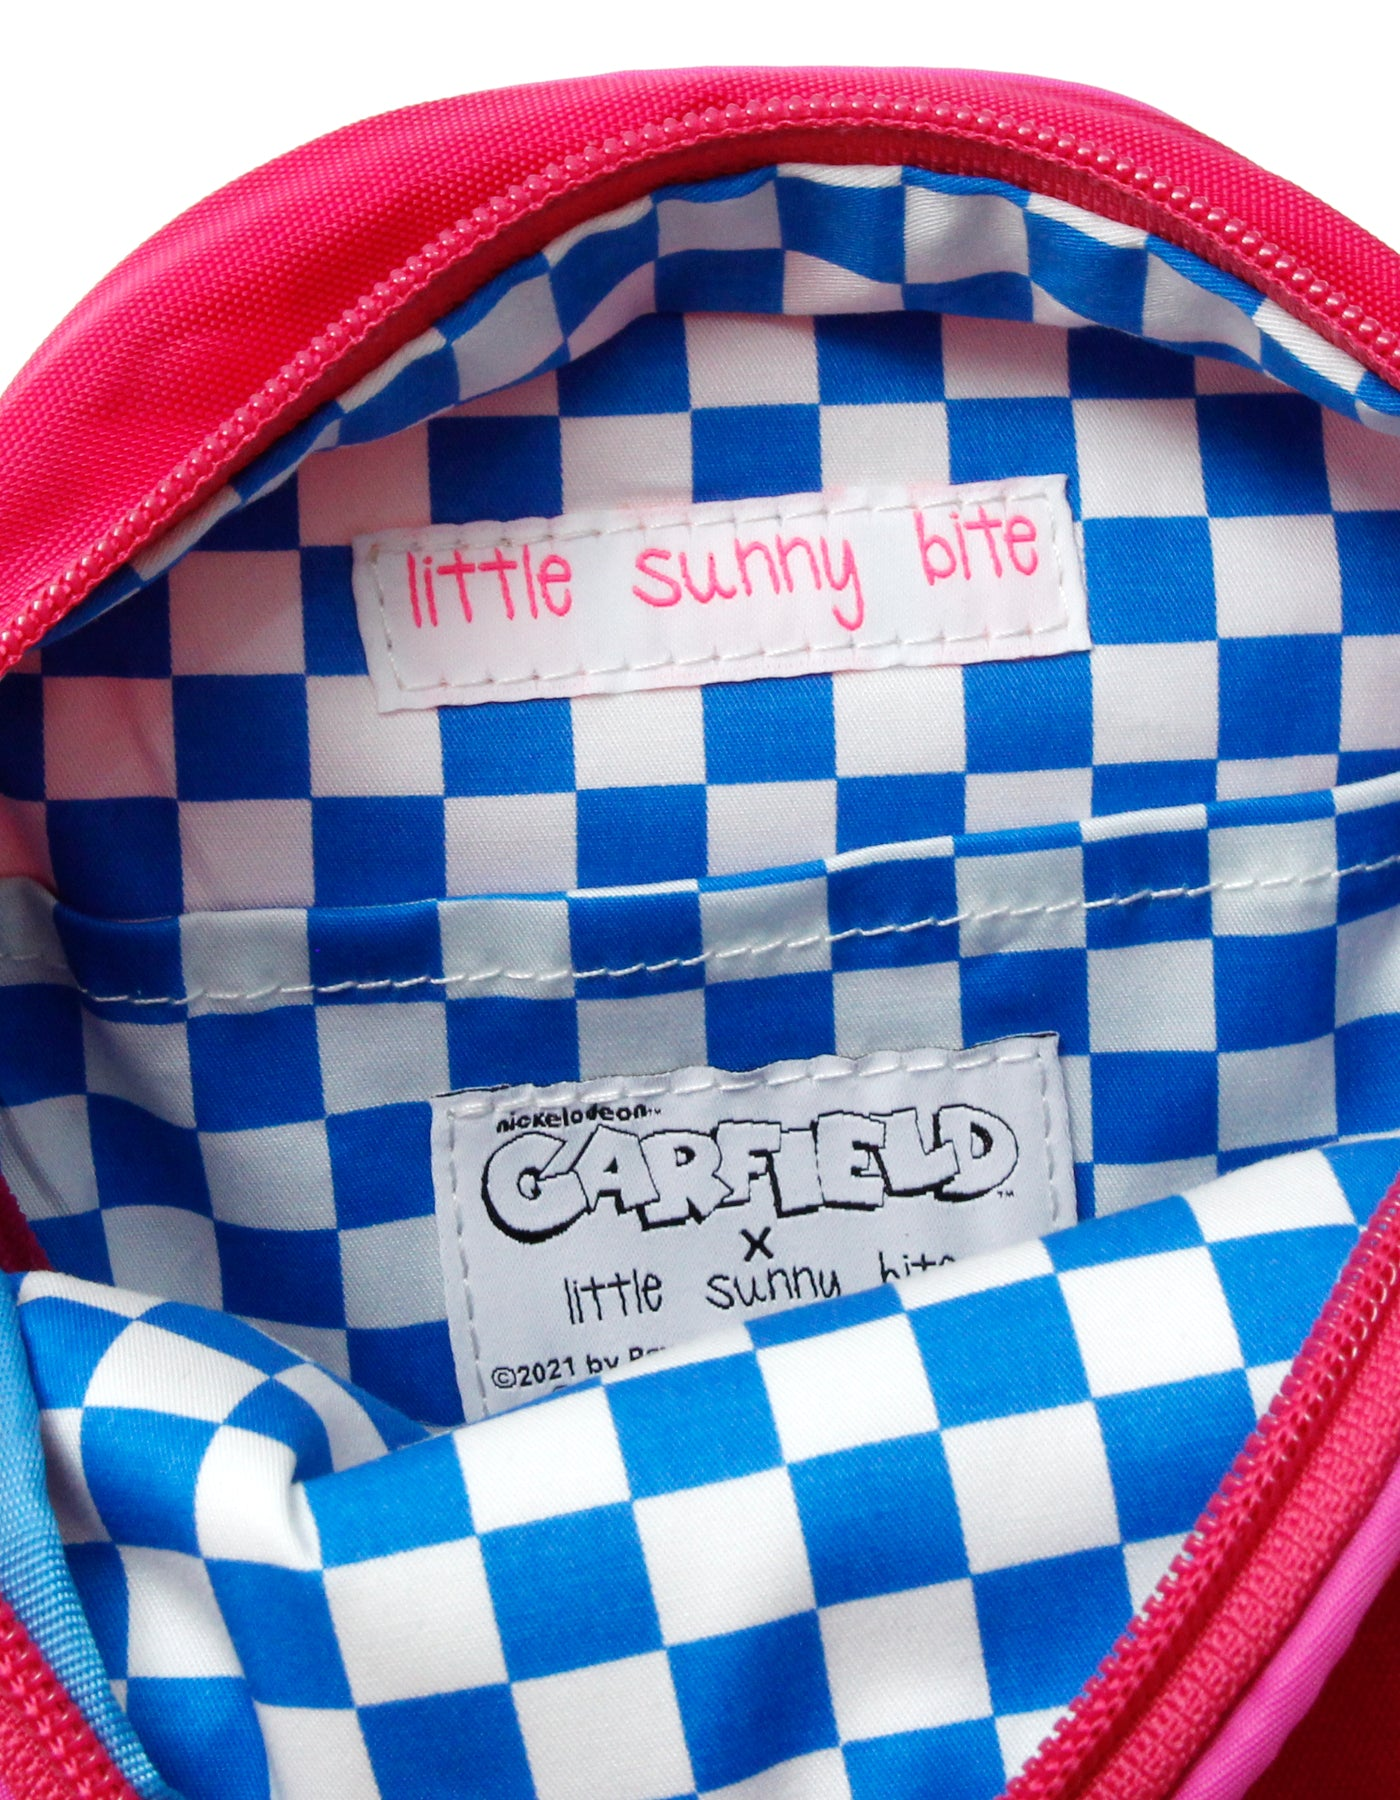 little sunny bite x Garfield mini bag / PINK